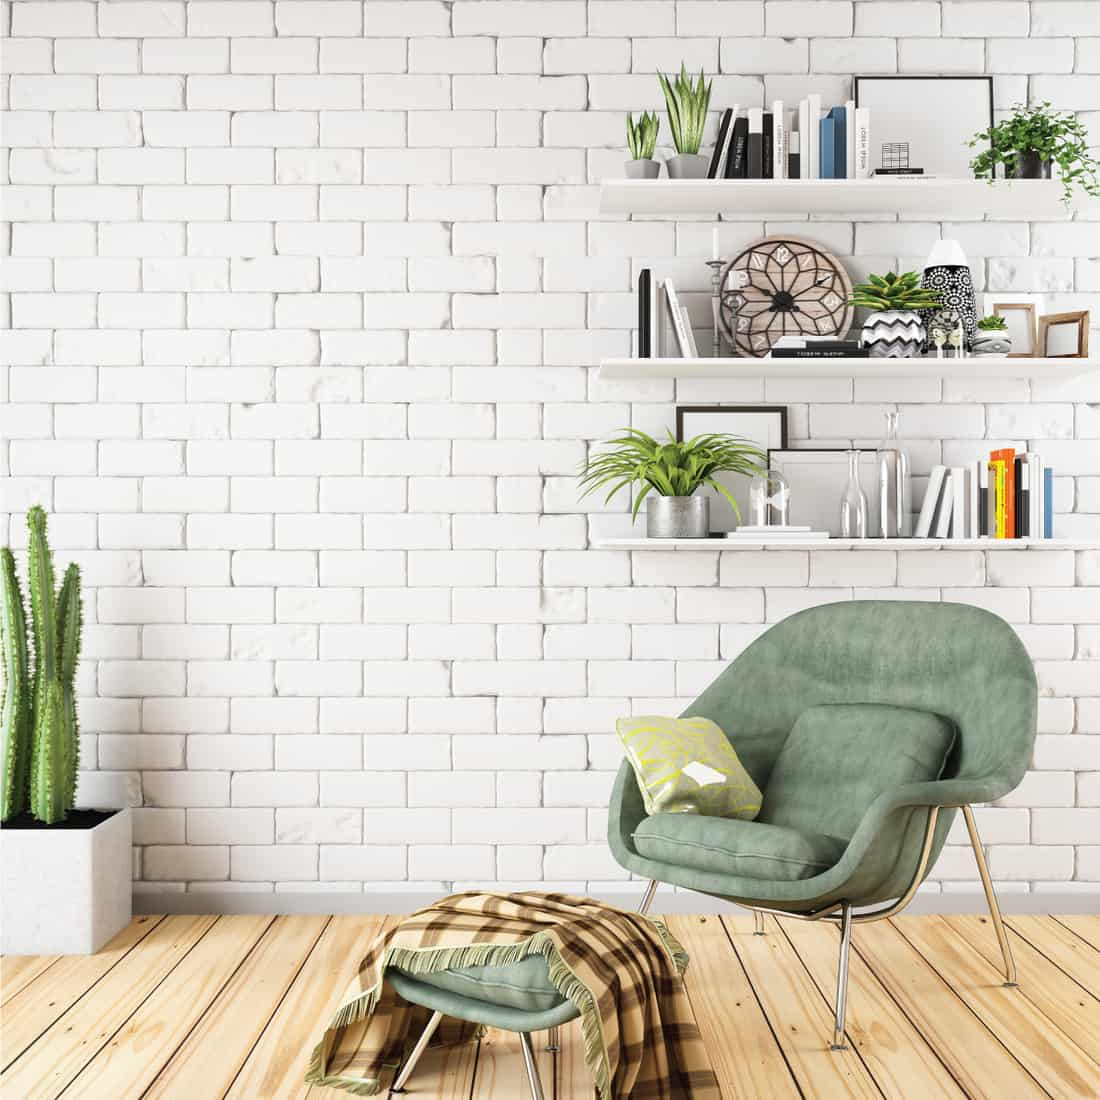 Bright cozy interior with armchair and Classic Floating Shelves